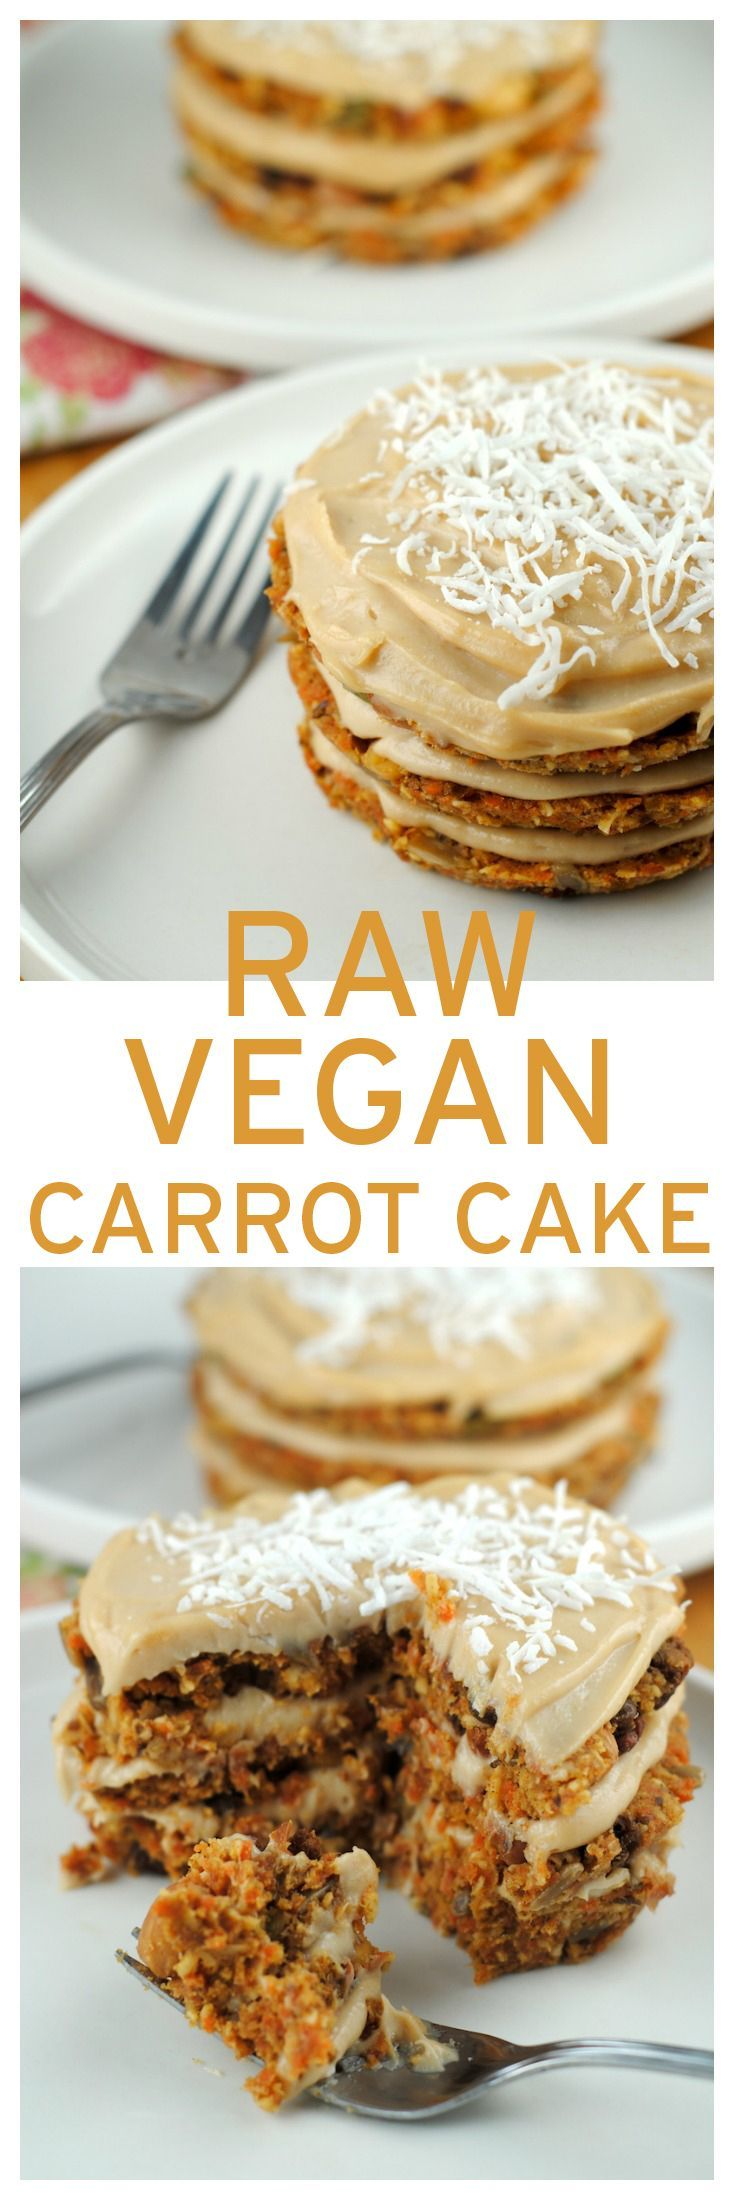 Raw Vegan Carrot Cake with maple cashew cream frosting! You should try this recipe.  From http://theblenderist.com